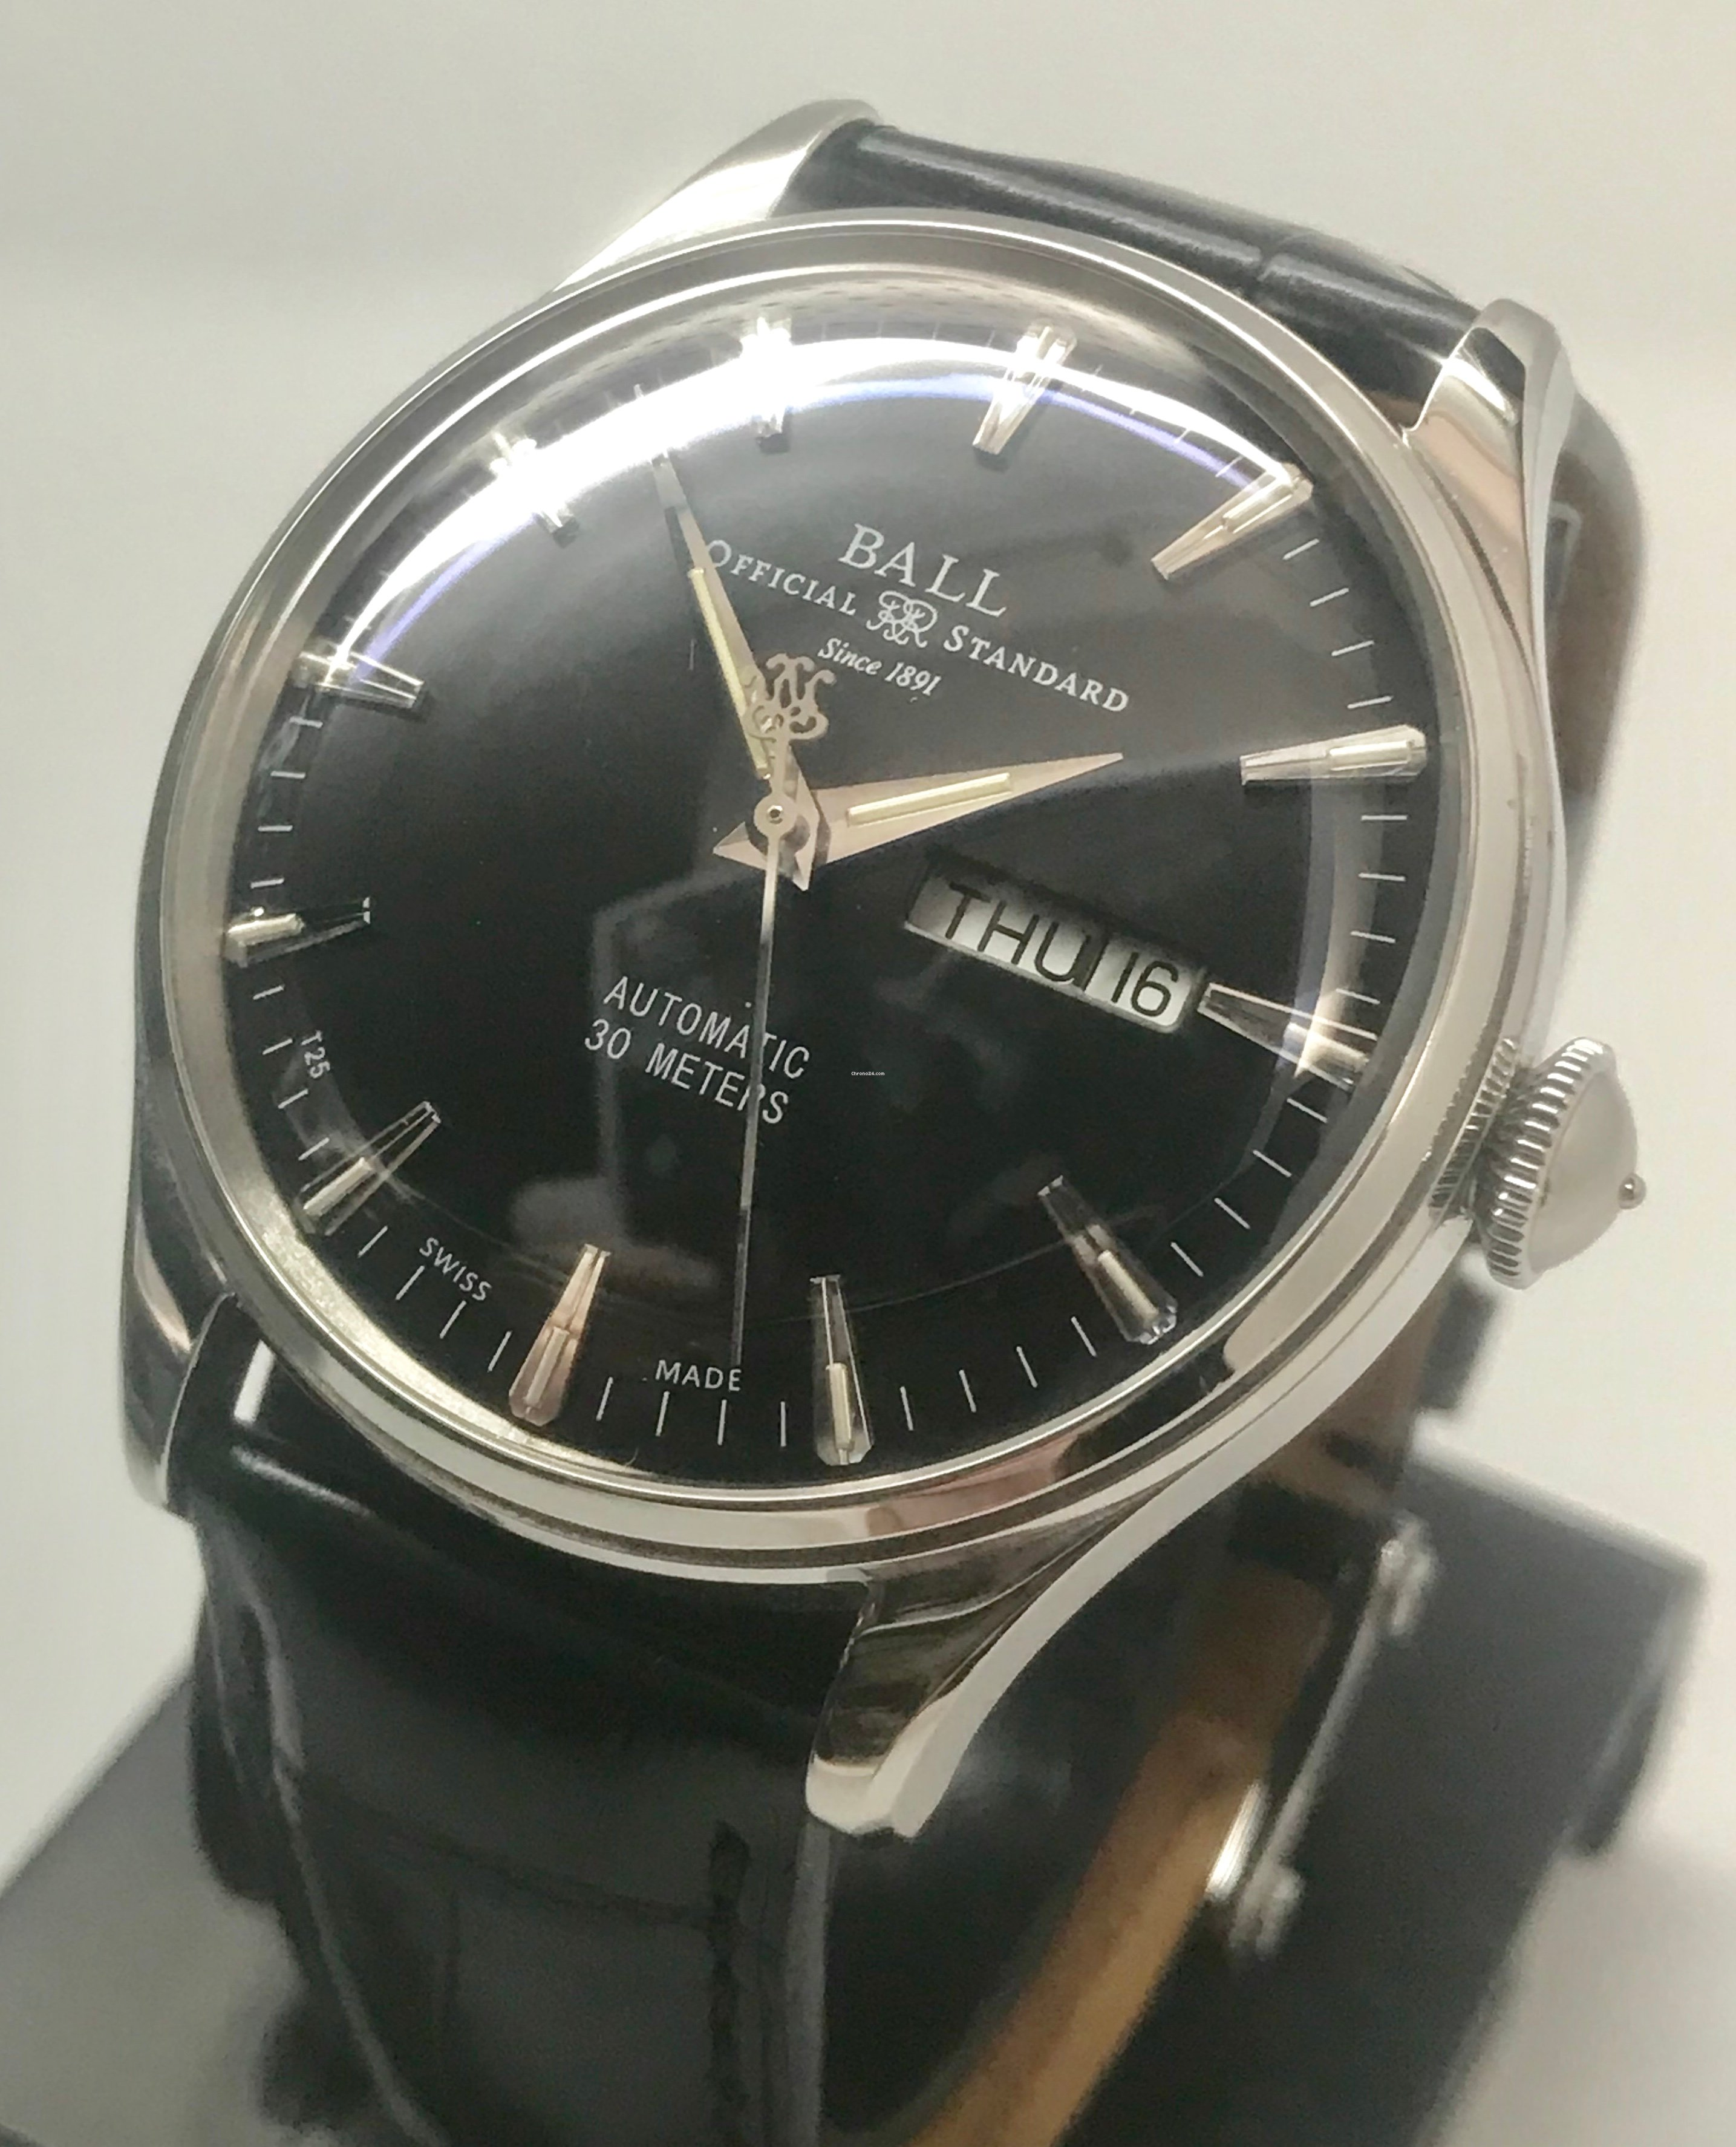 Dating ball watches